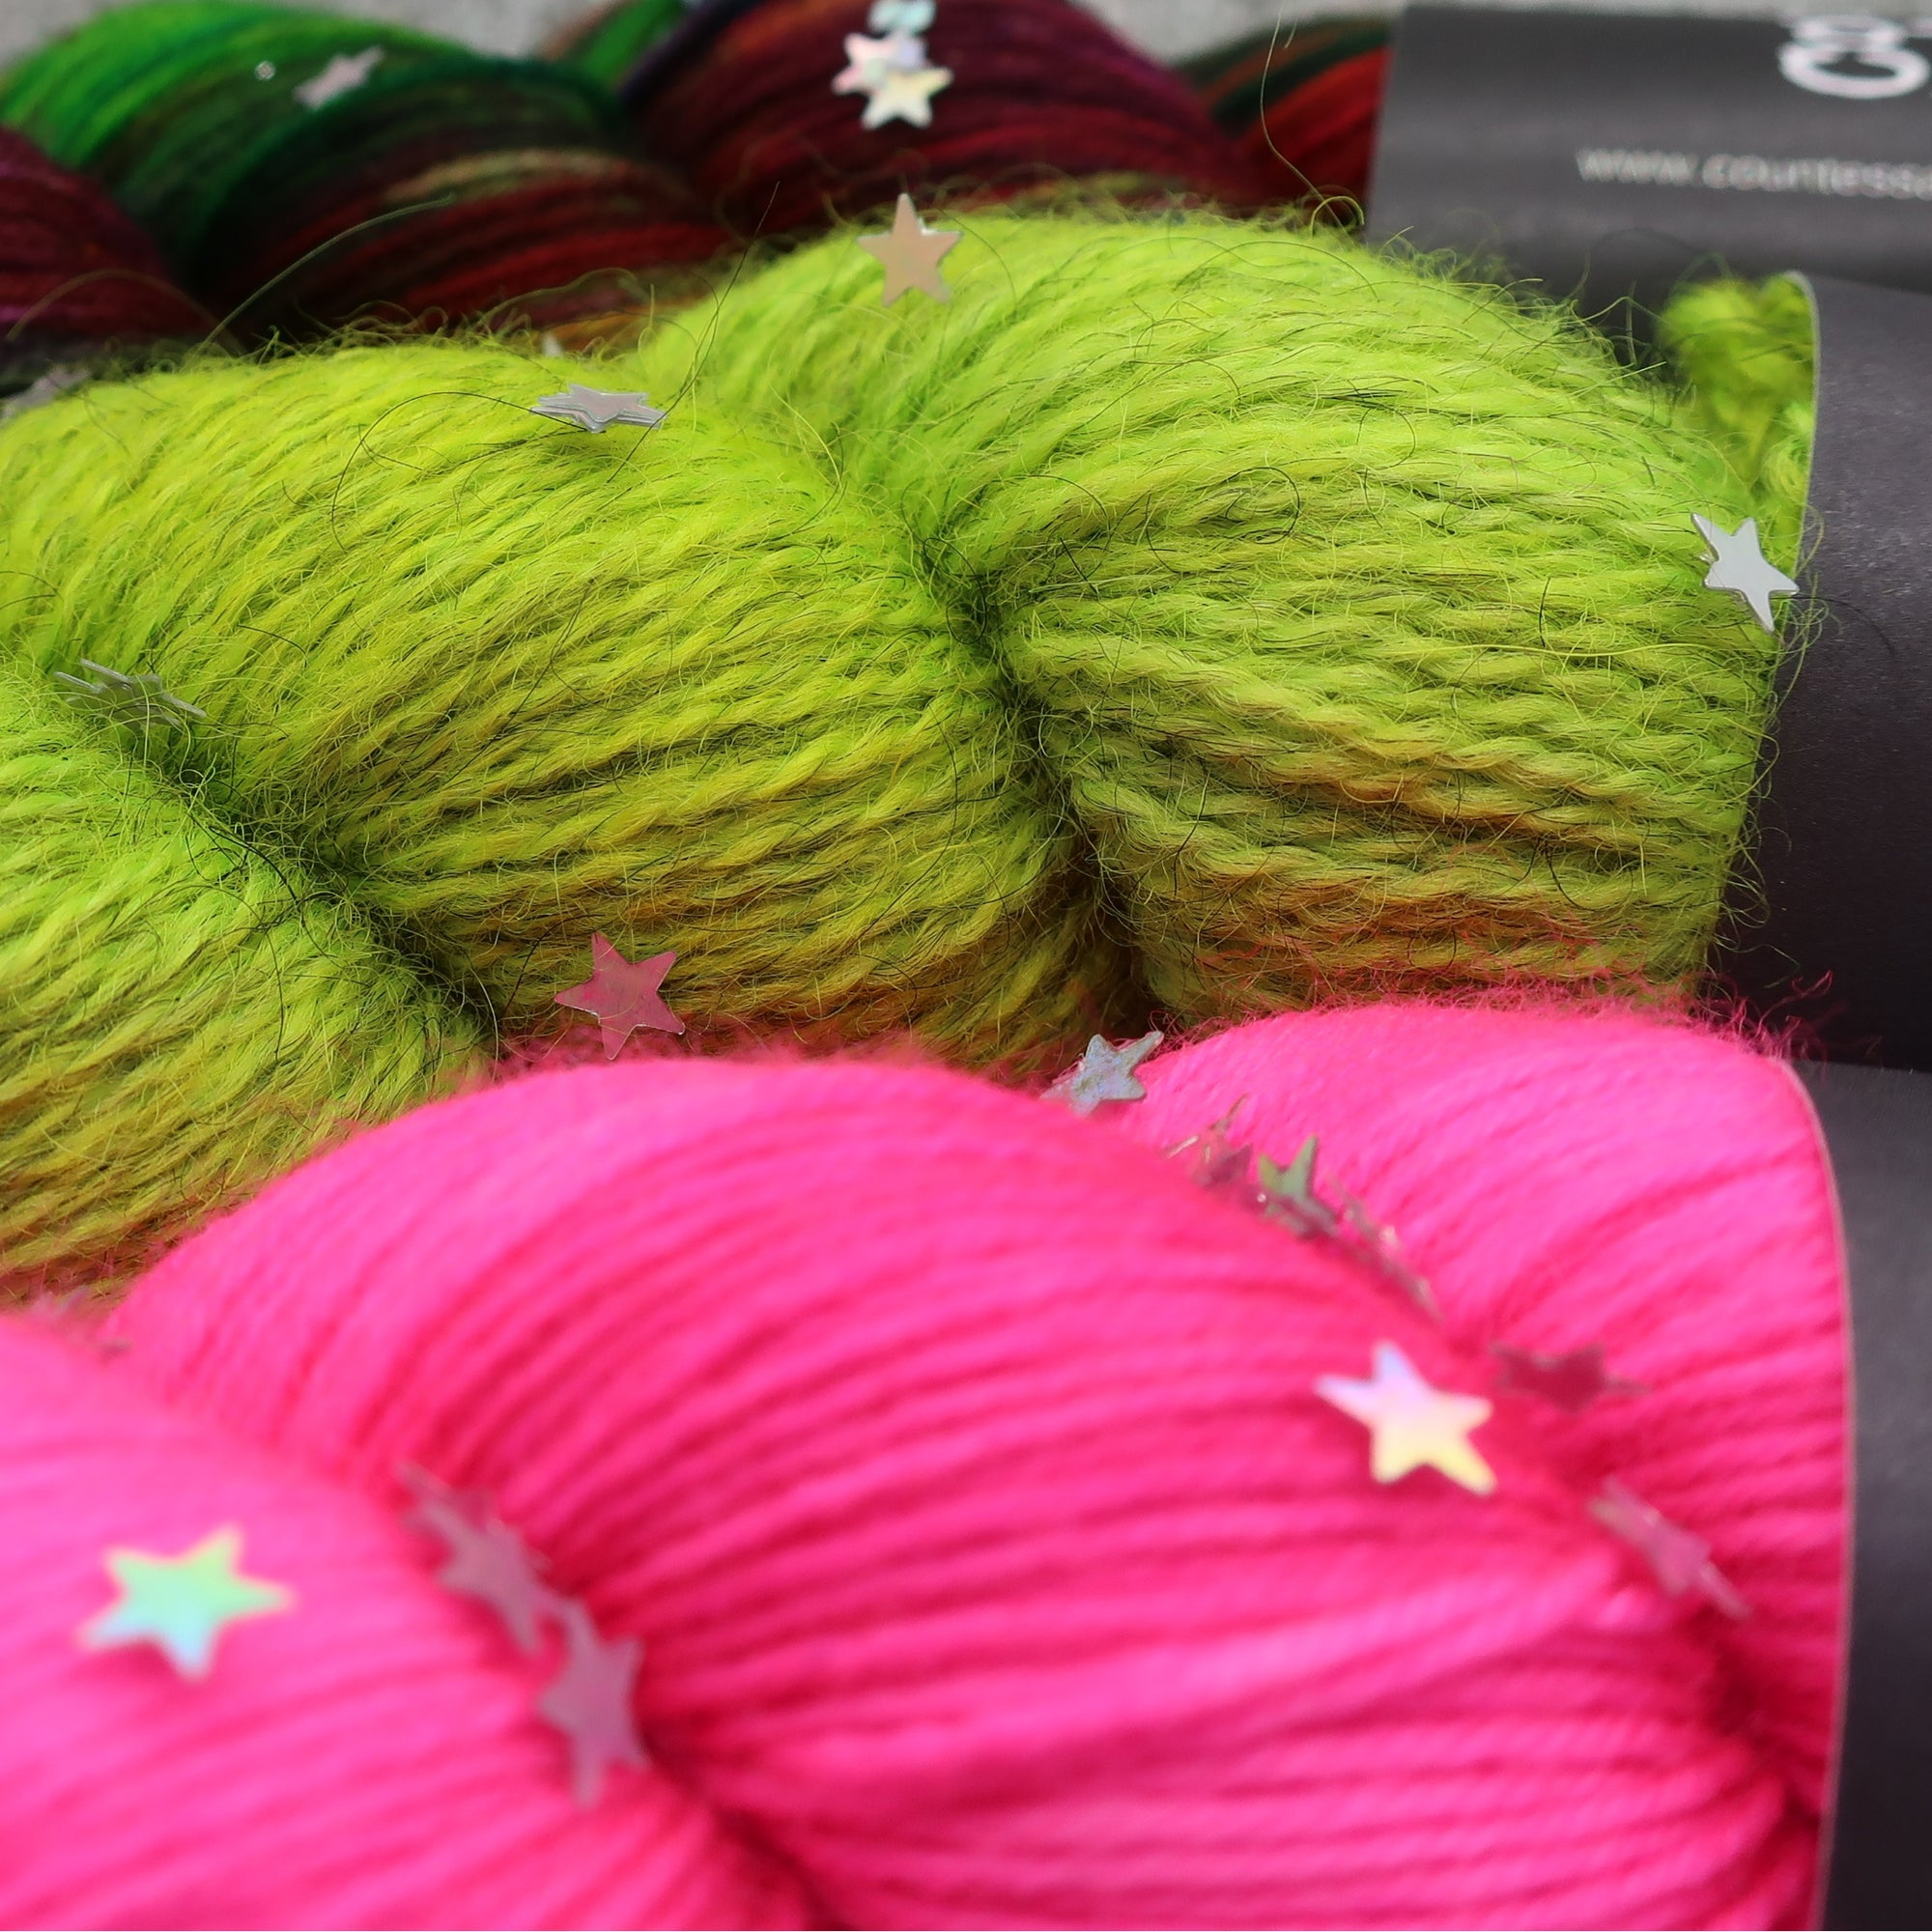 Skeins of hand-dyed wool yarn by Countess Ablaze. Merino, Bluefaced Leceister, Gotland wool, sock yarn in green and pink.